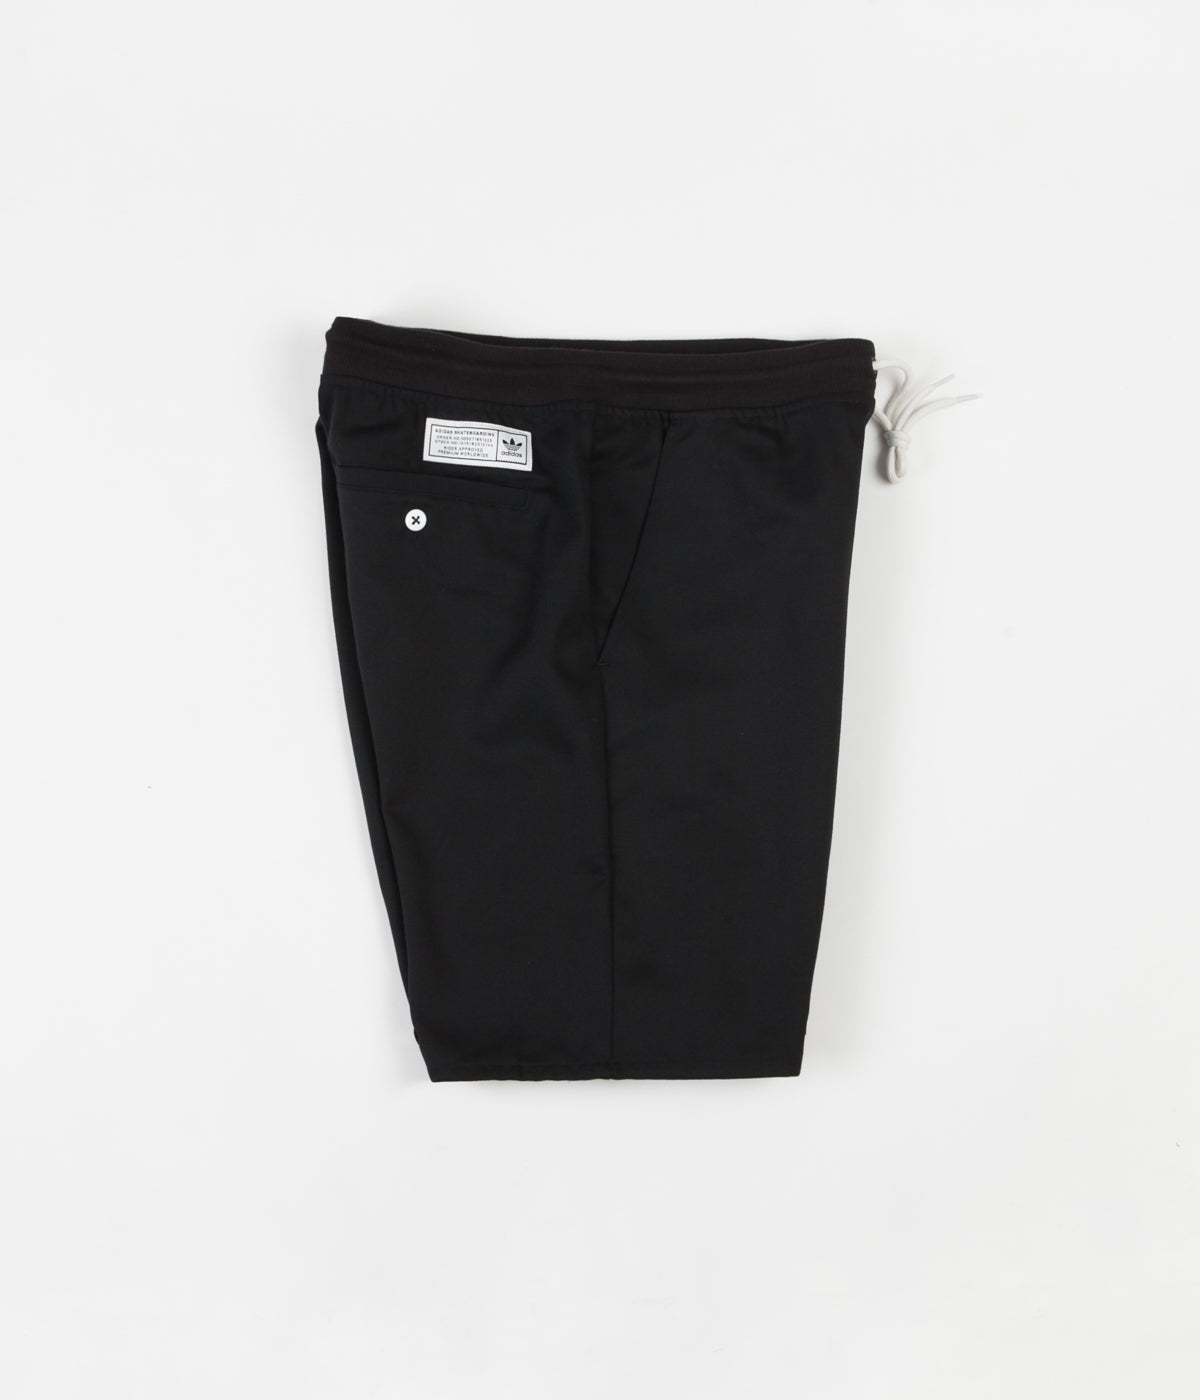 Adidas Barbur Shorts - Black